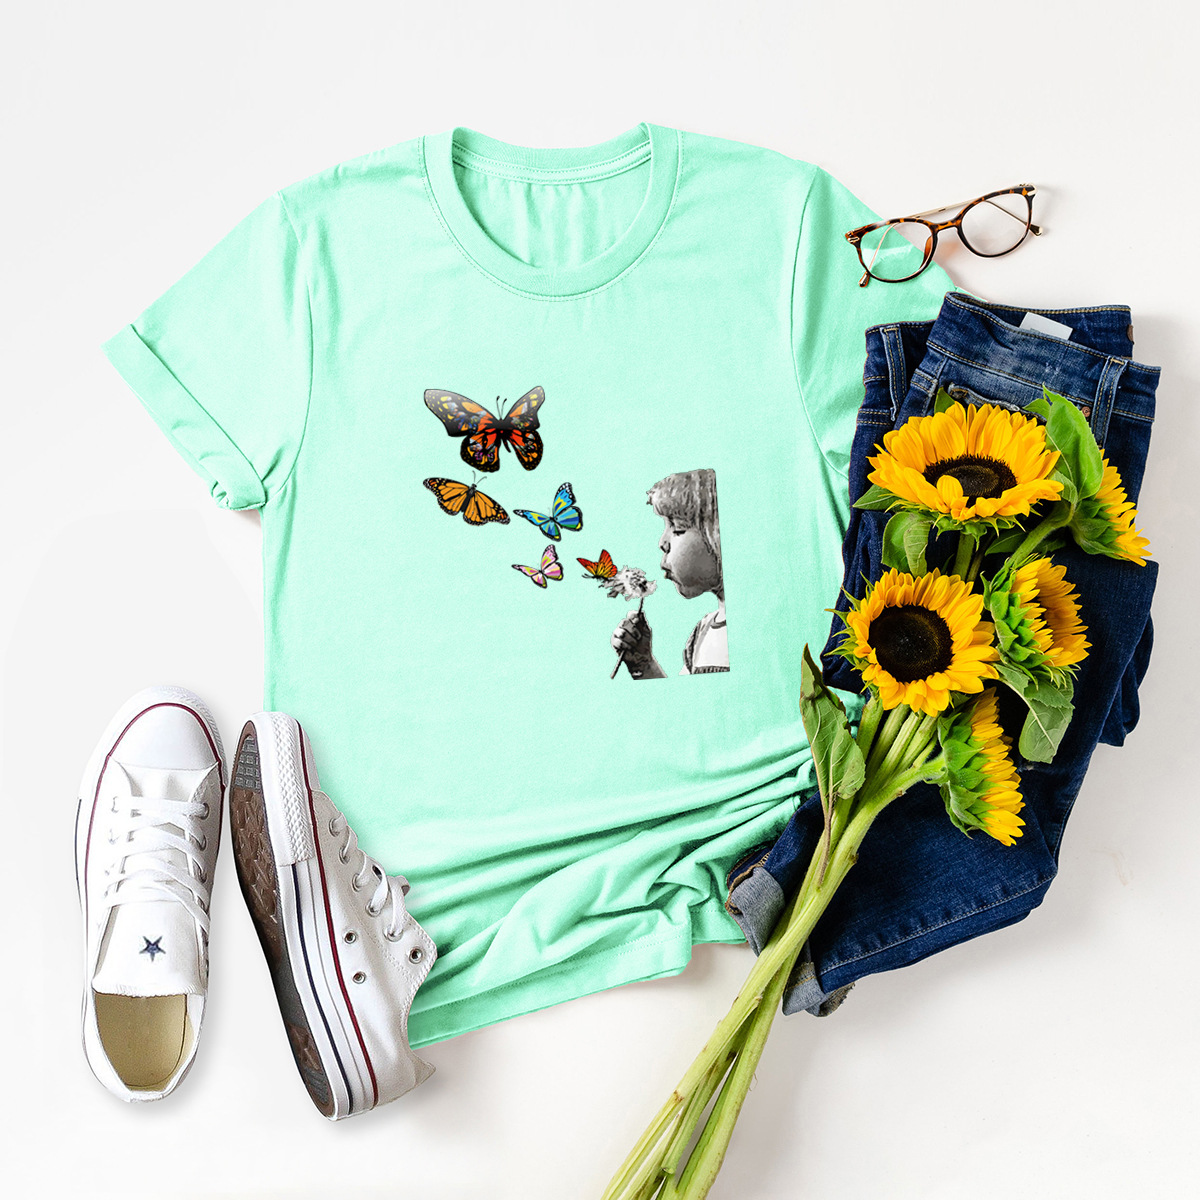 casual kids blowing dandelion shirt NSSN1660